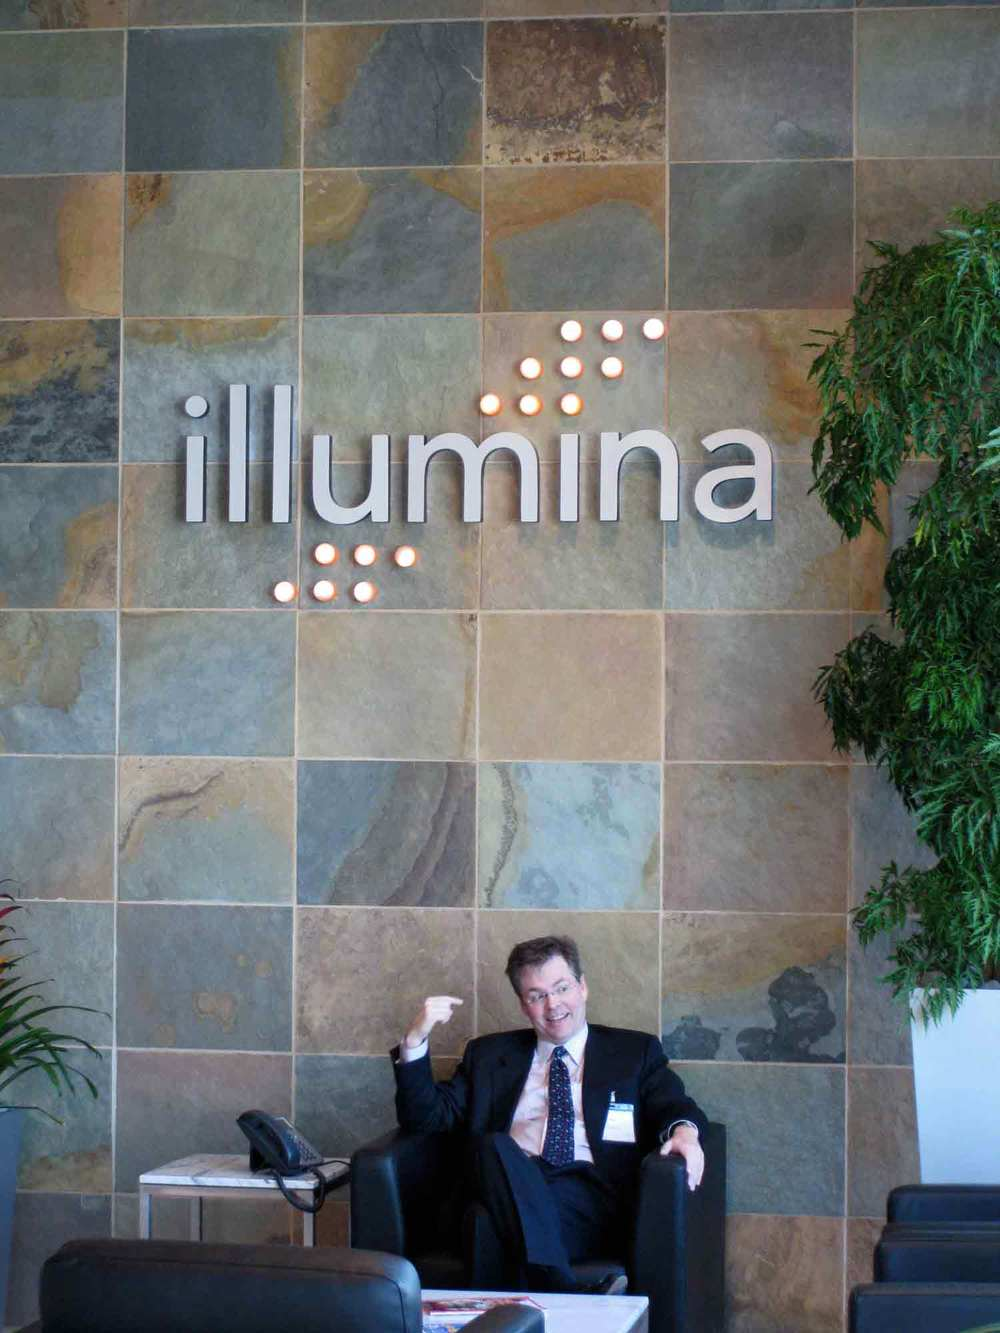 Illumina_reception_lobby.jpg